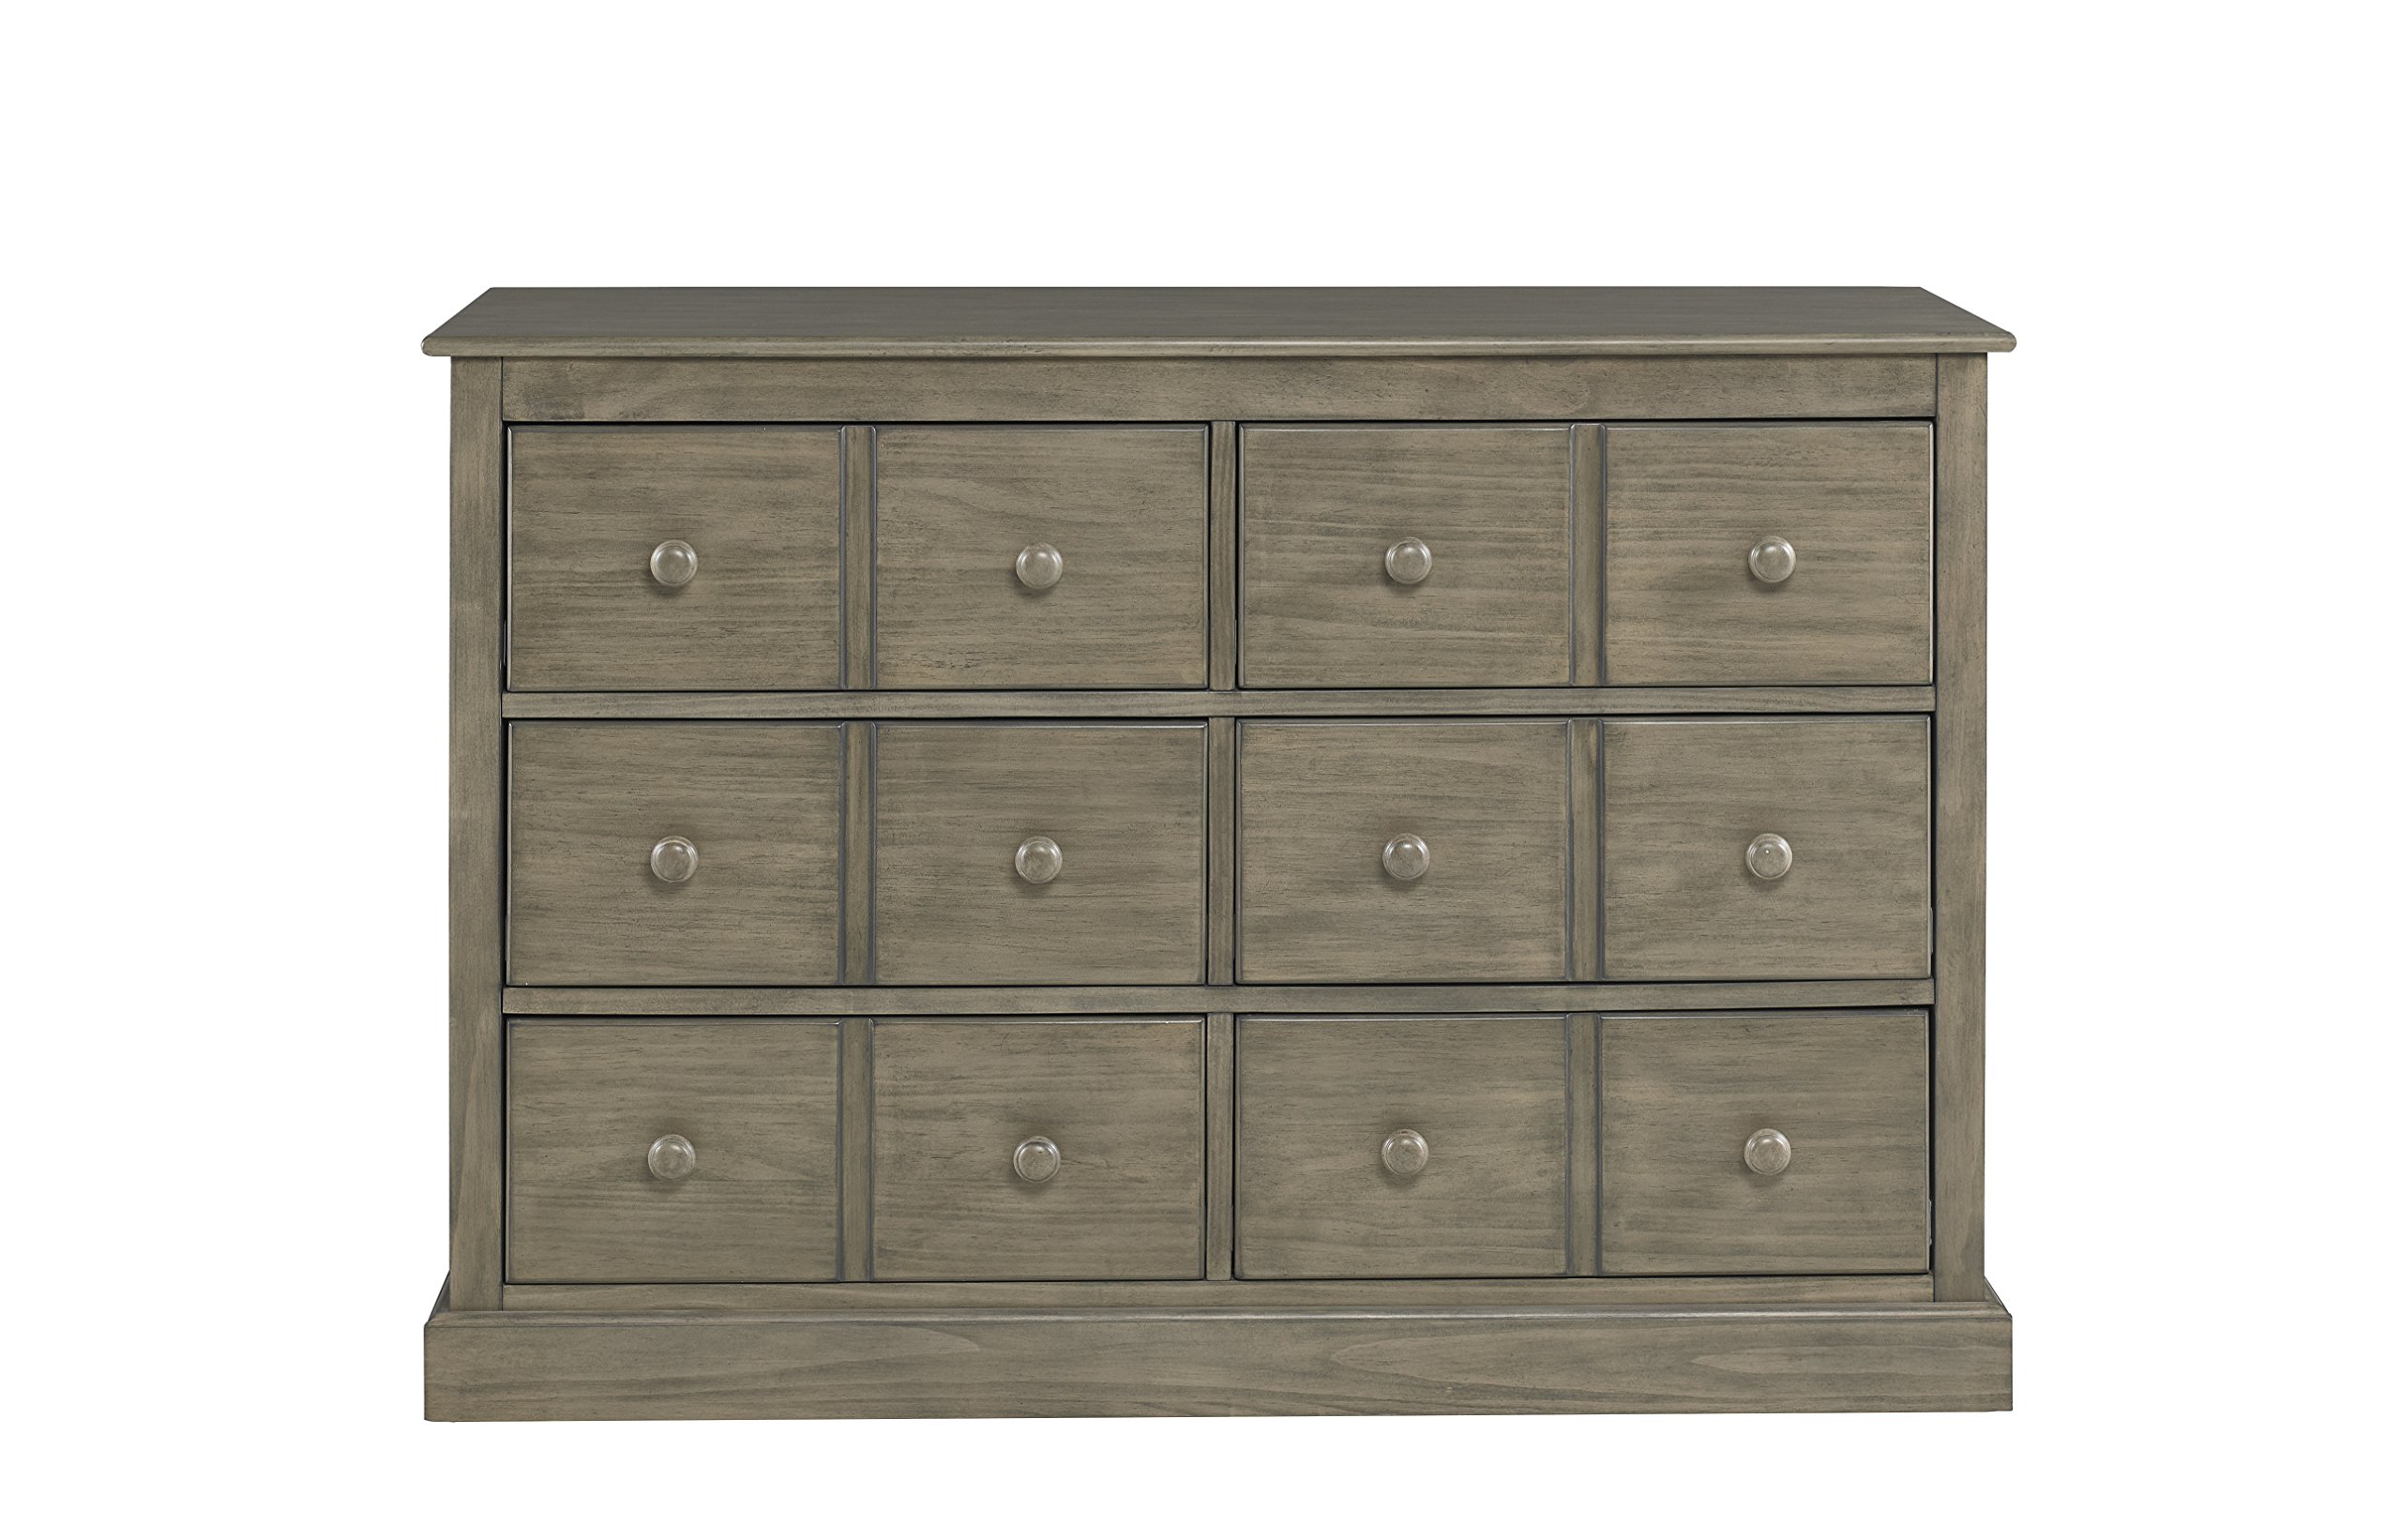 Fisher-Price Signature 6 Drawer Double Dresser, Vintage Grey by Fisher-Price